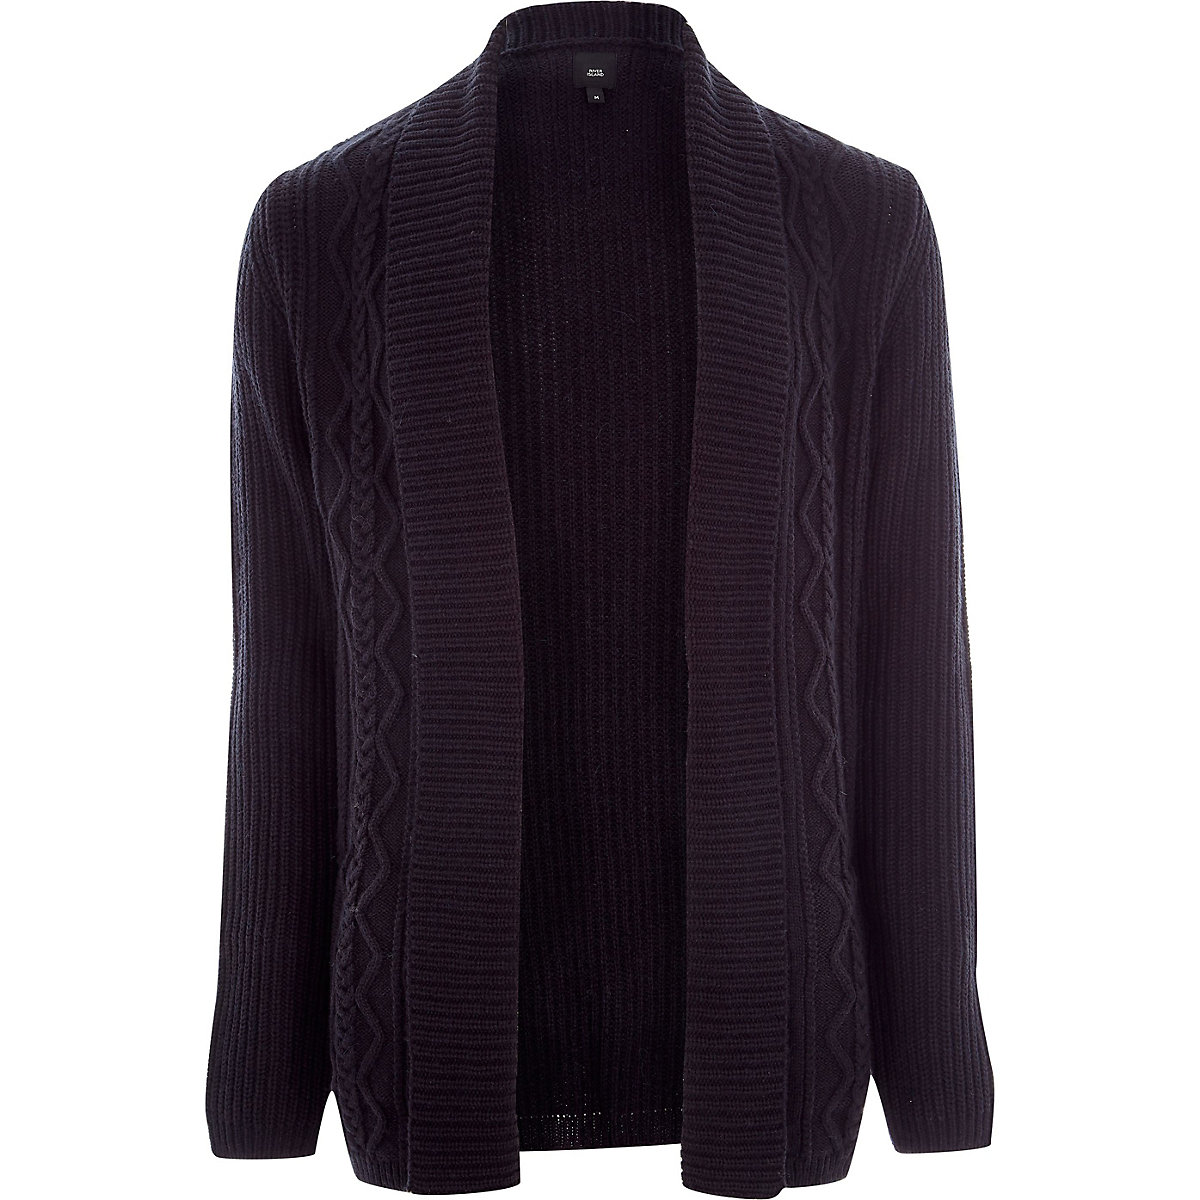 Big and Tall navy cable knit cardigan